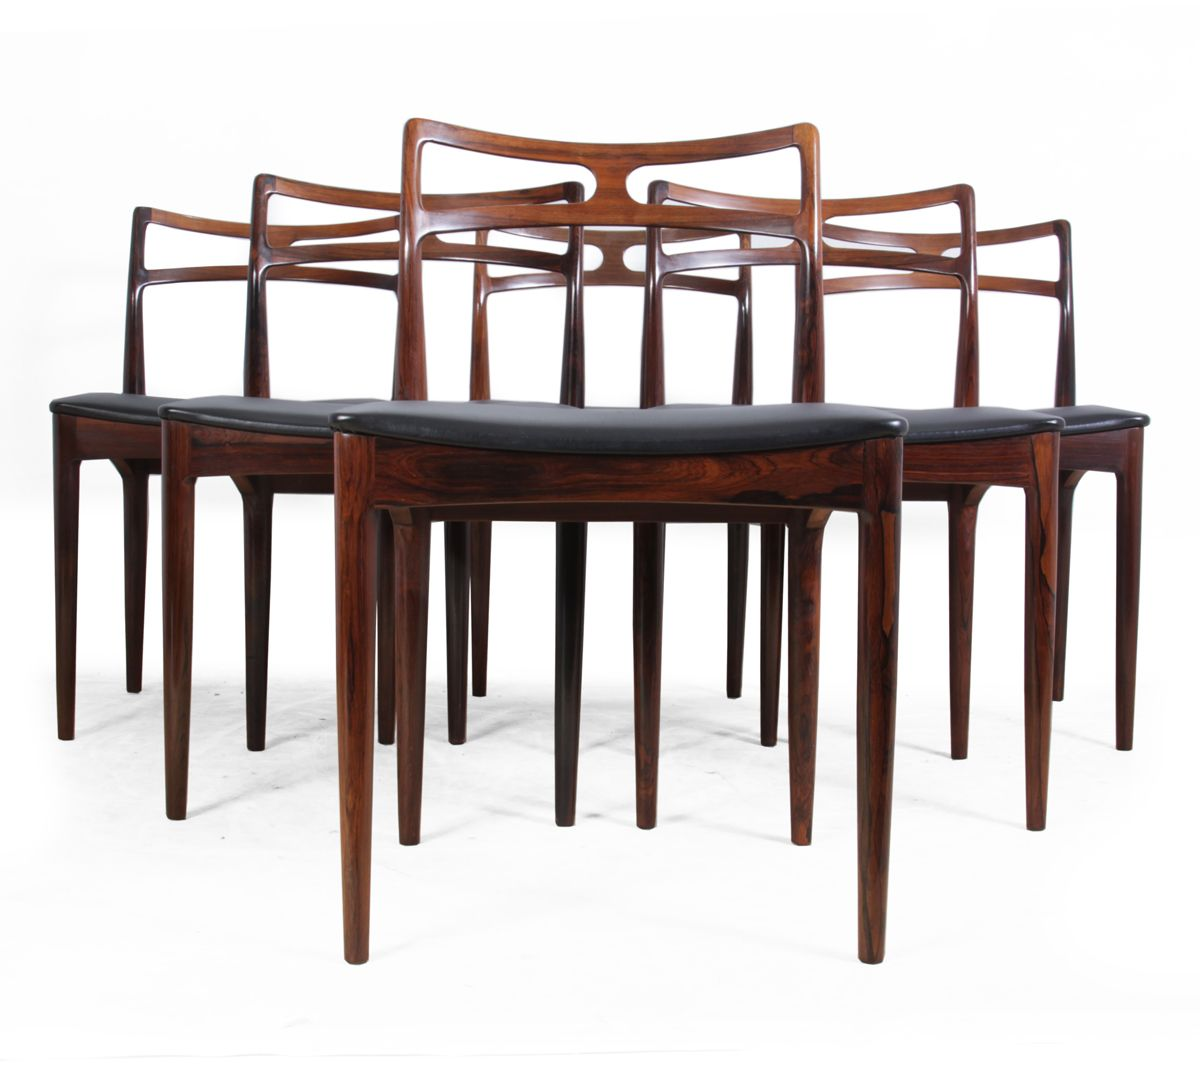 Model 94 Dining Chairs By Johannes Andersen For Christian Linneberg Denmark,  1961, Set Of 6